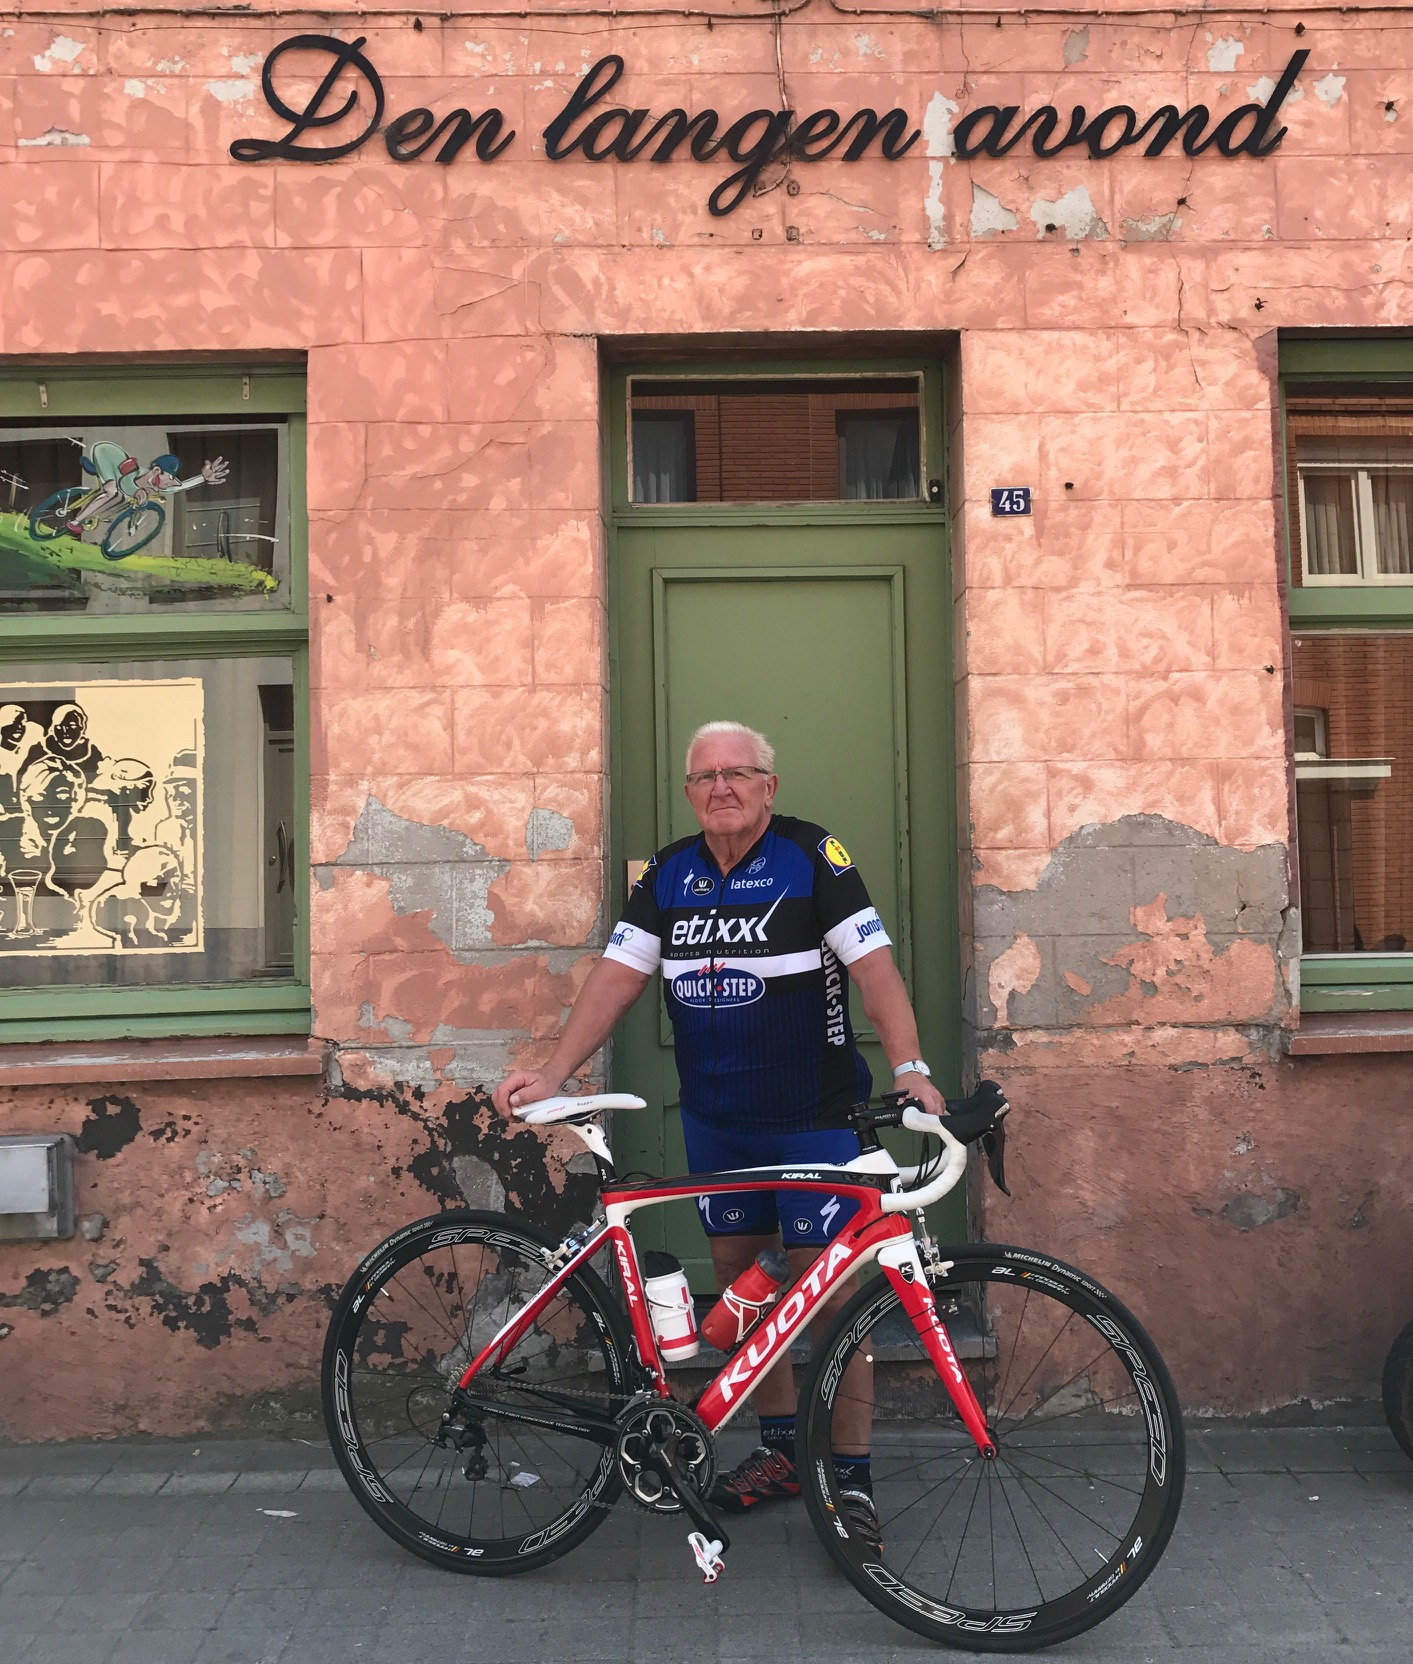 Noel La Rose (BiciSport Master) turns 81 years young & is celebrating the occasion - meeting point is the corner of Shorelink Drive & Walker Street Rhodes Point (near Moorebank Bridge). Ride is laps around SOPA. For details contact Mike O'Reilly on 0417 403 244